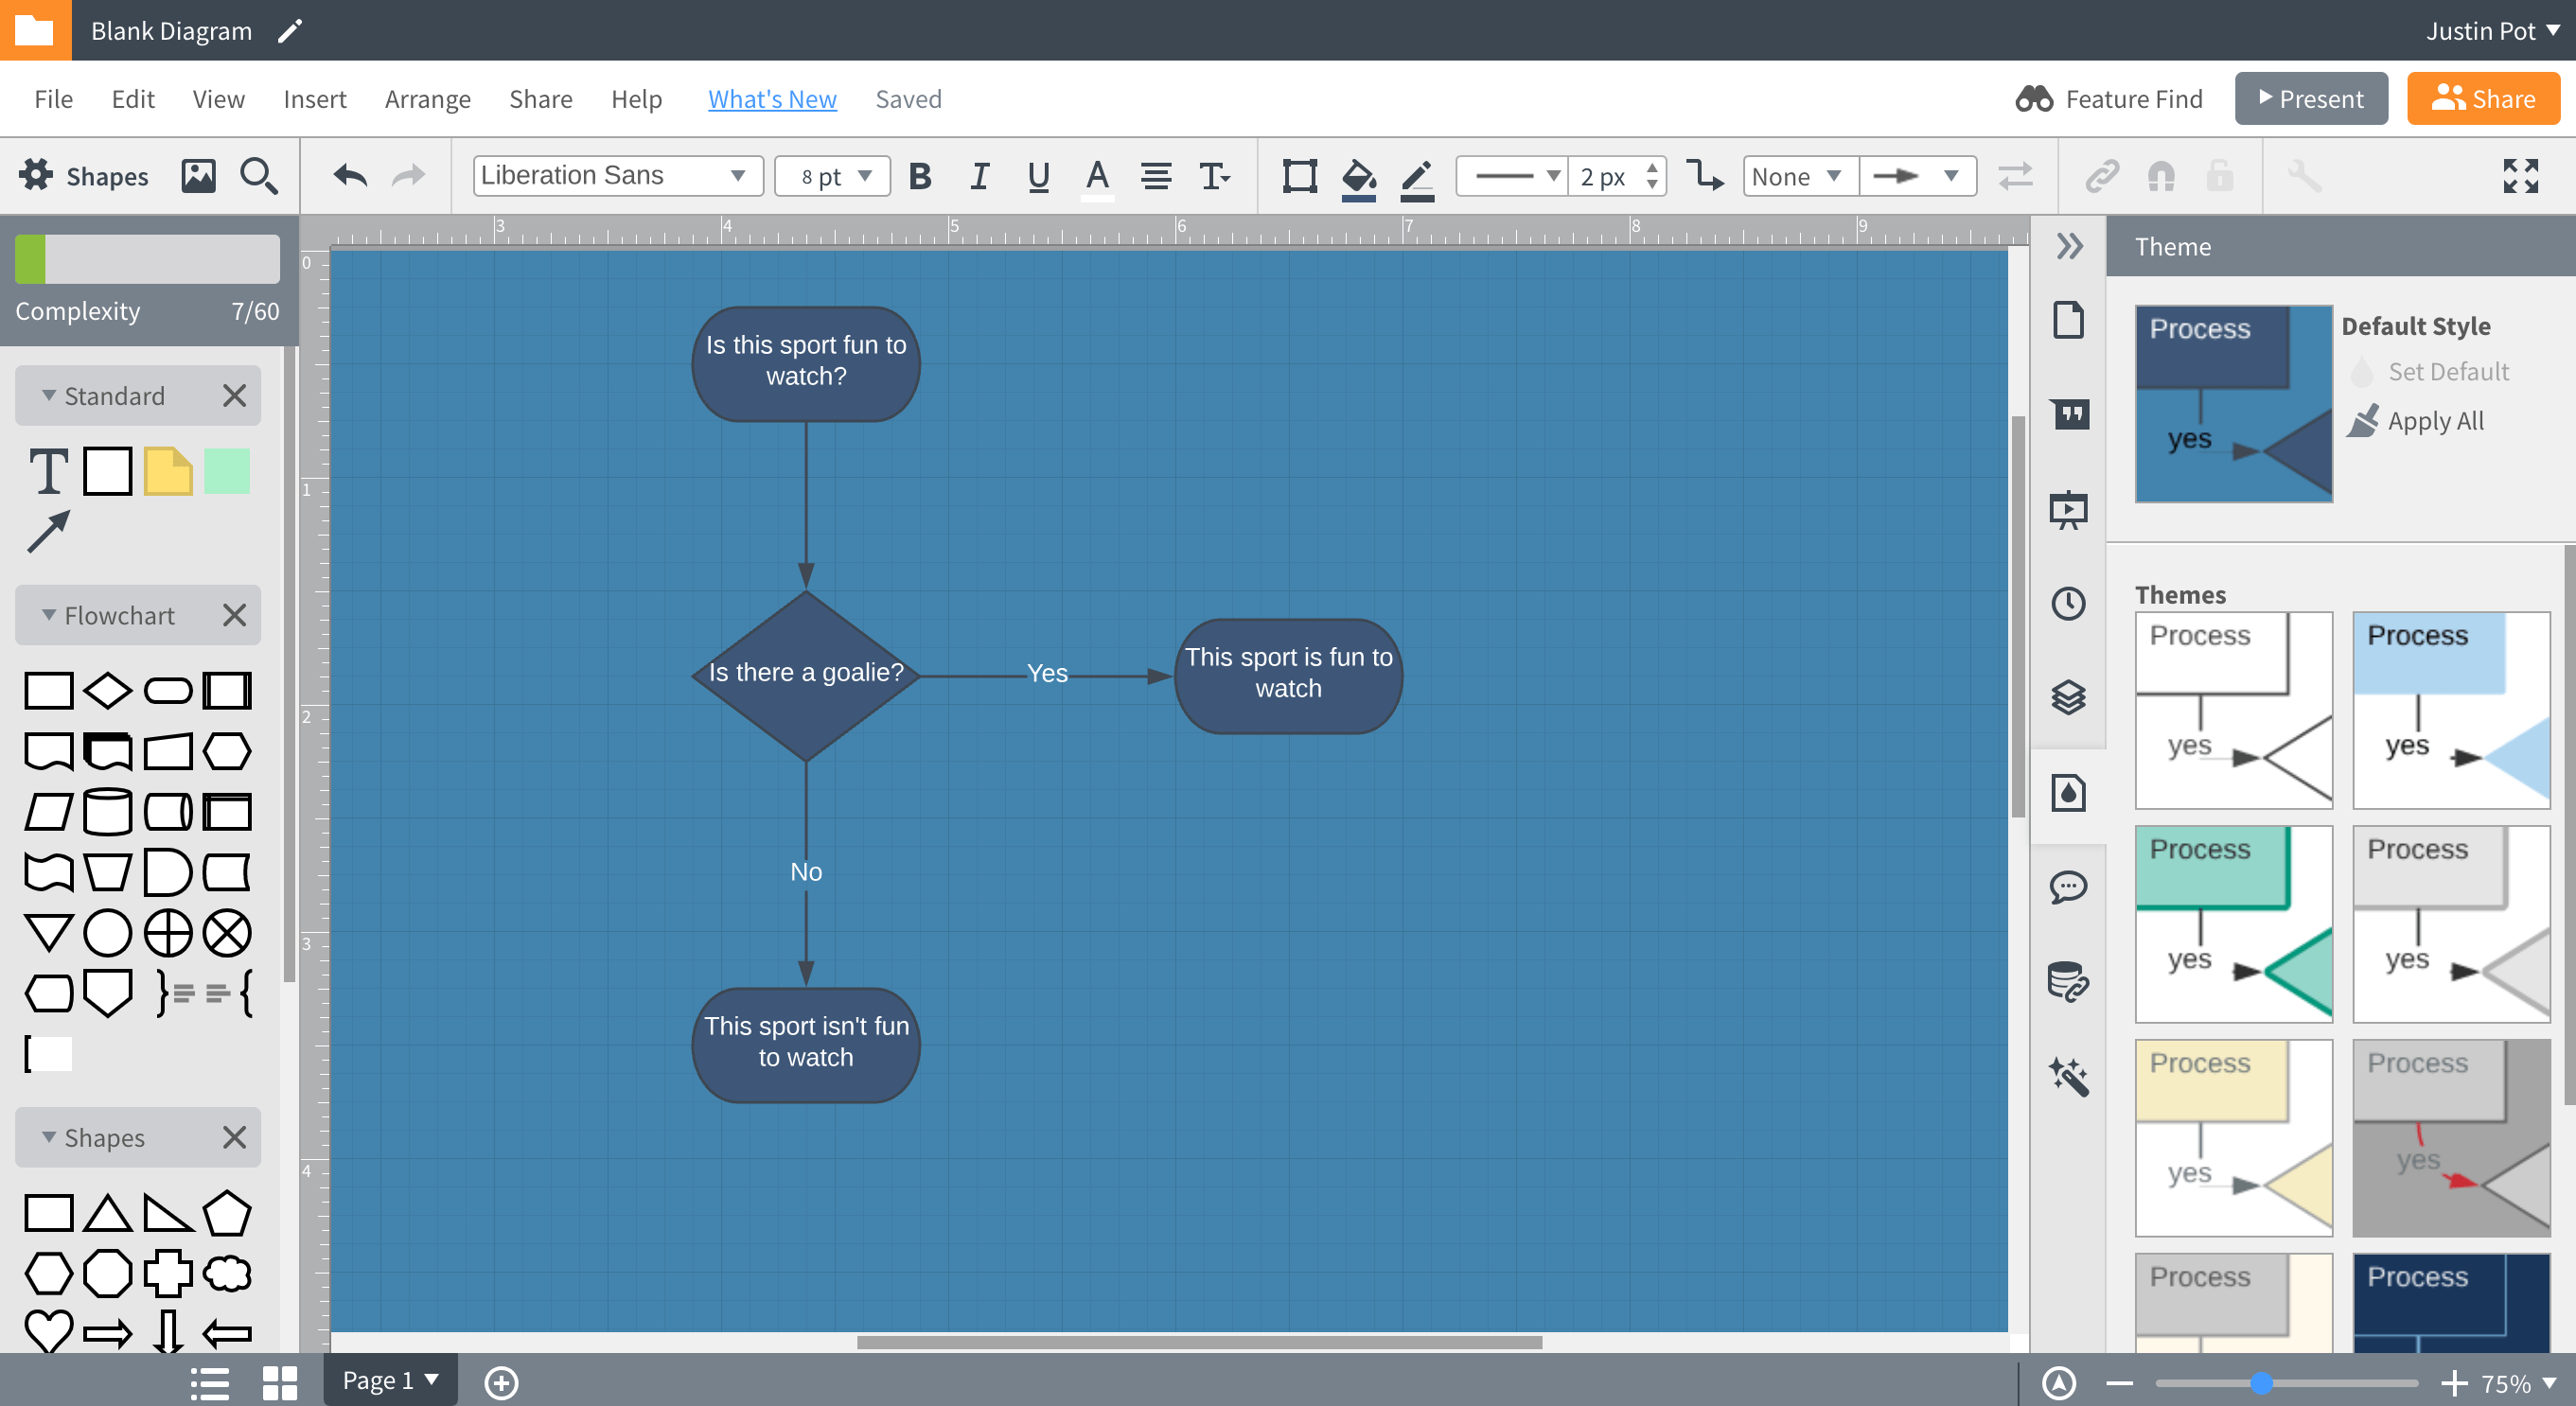 best tool to draw diagrams 2003 jeep liberty engine diagram the flowchart software and diagramming tools for 2019 online collaboration lucidchart screenshot